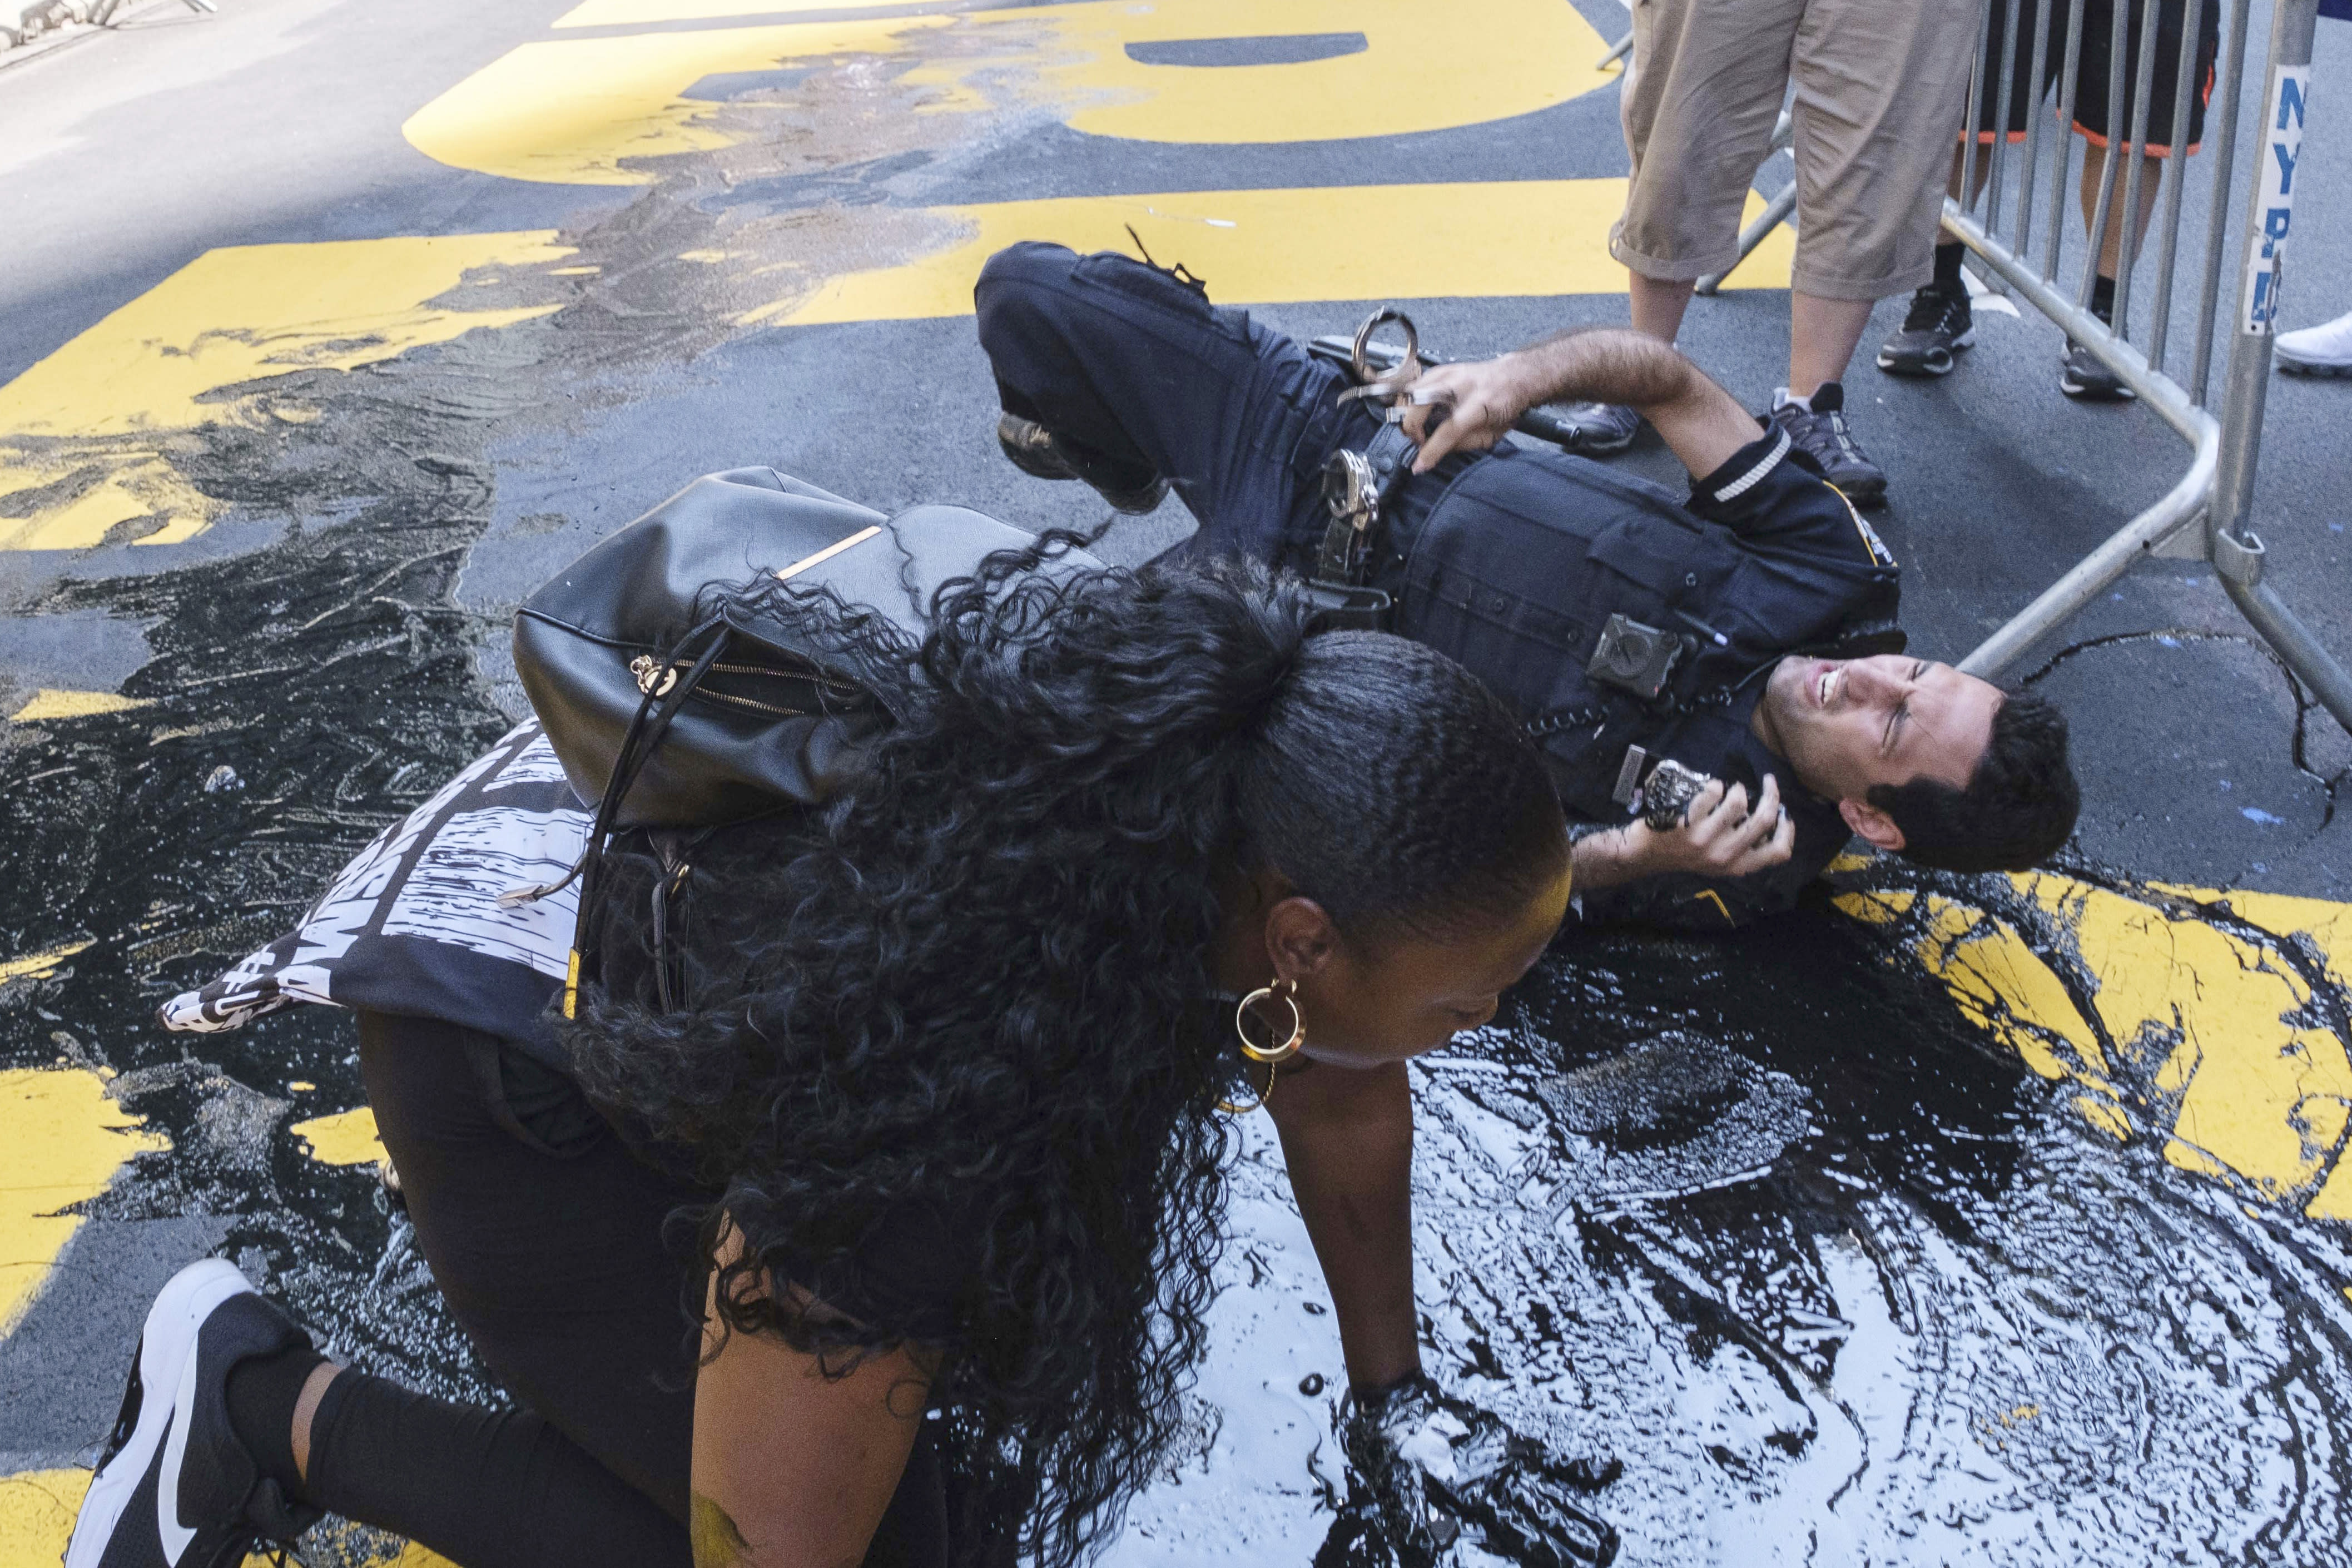 An NYPD officer falls during an attempt to detain a protester pouring black paint on the Black Lives Matter mural outside of Trump Tower on Fifth Avenue in the Manhattan borough of New York on Saturday, July 18, 2020. (AP Photo/Yuki Iwamura)